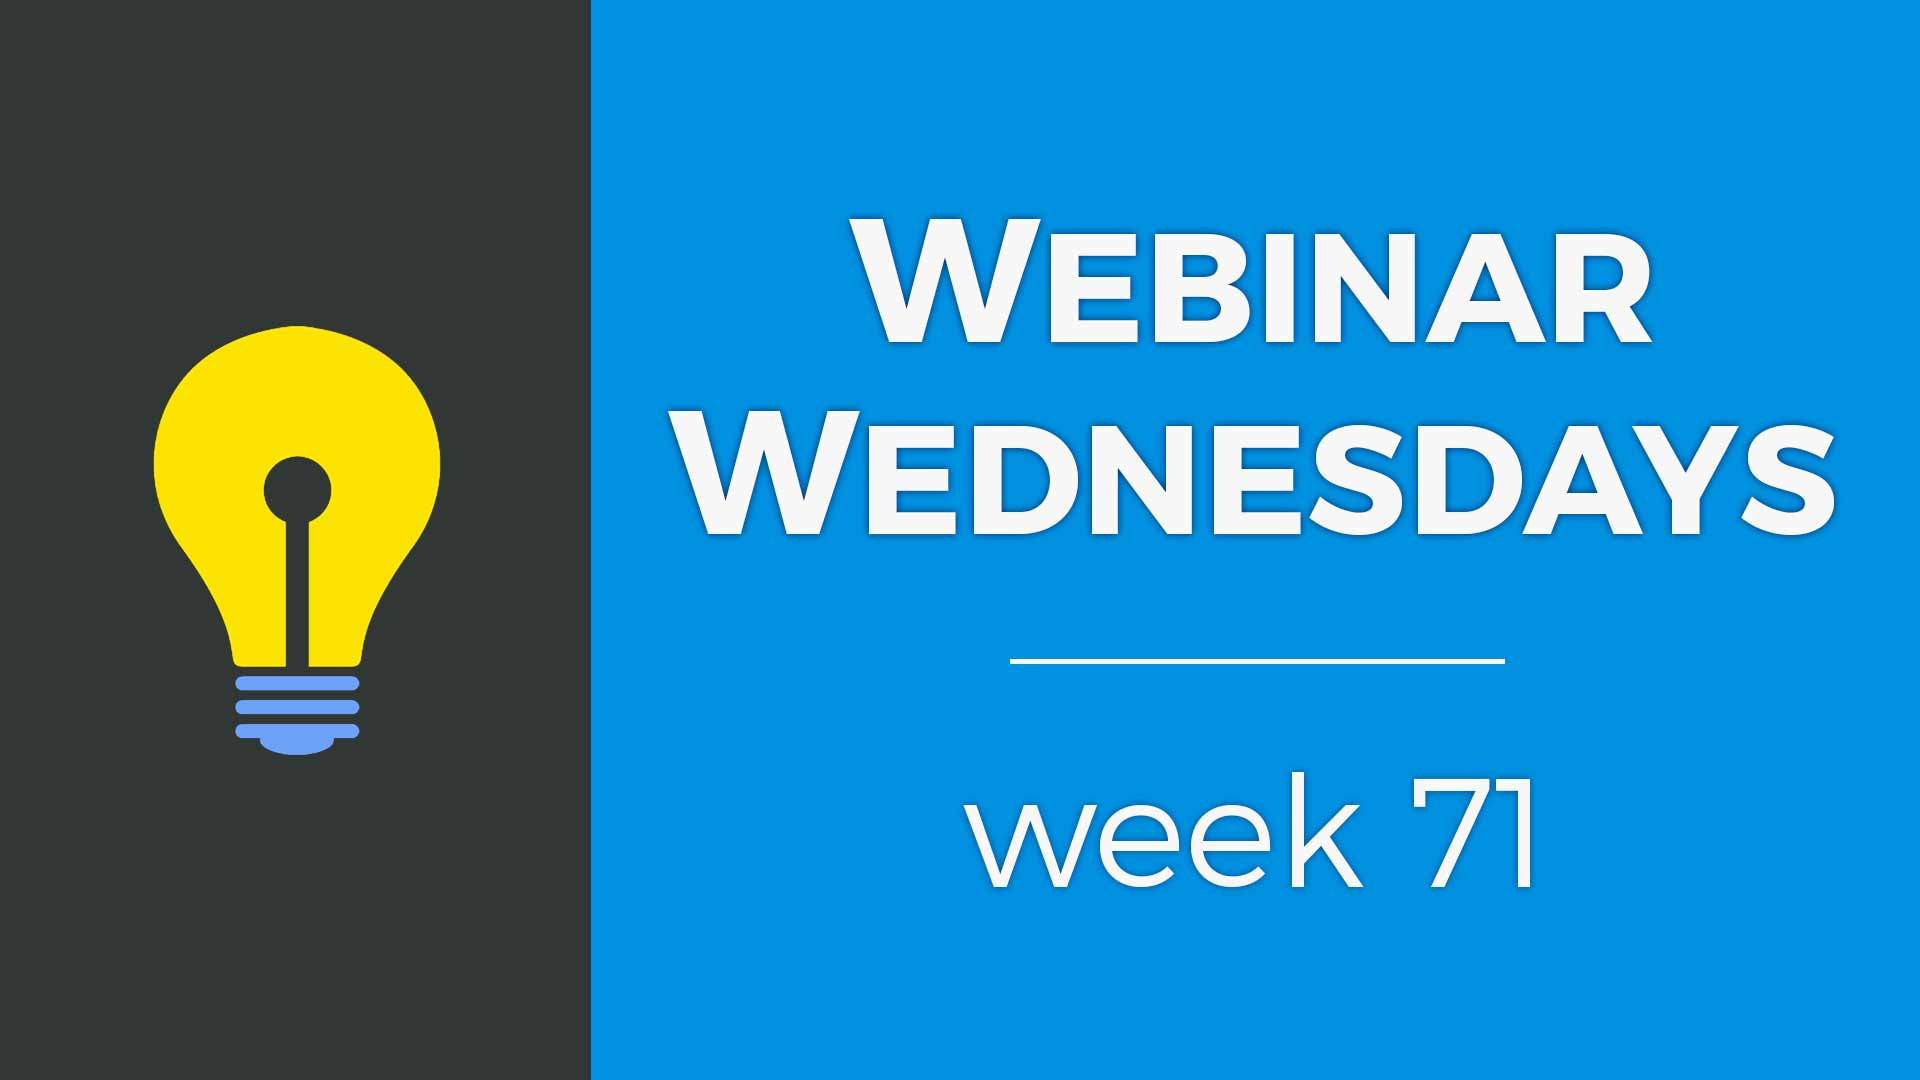 Webinar Wednesday 71 <small>– August 14, 2019</small>